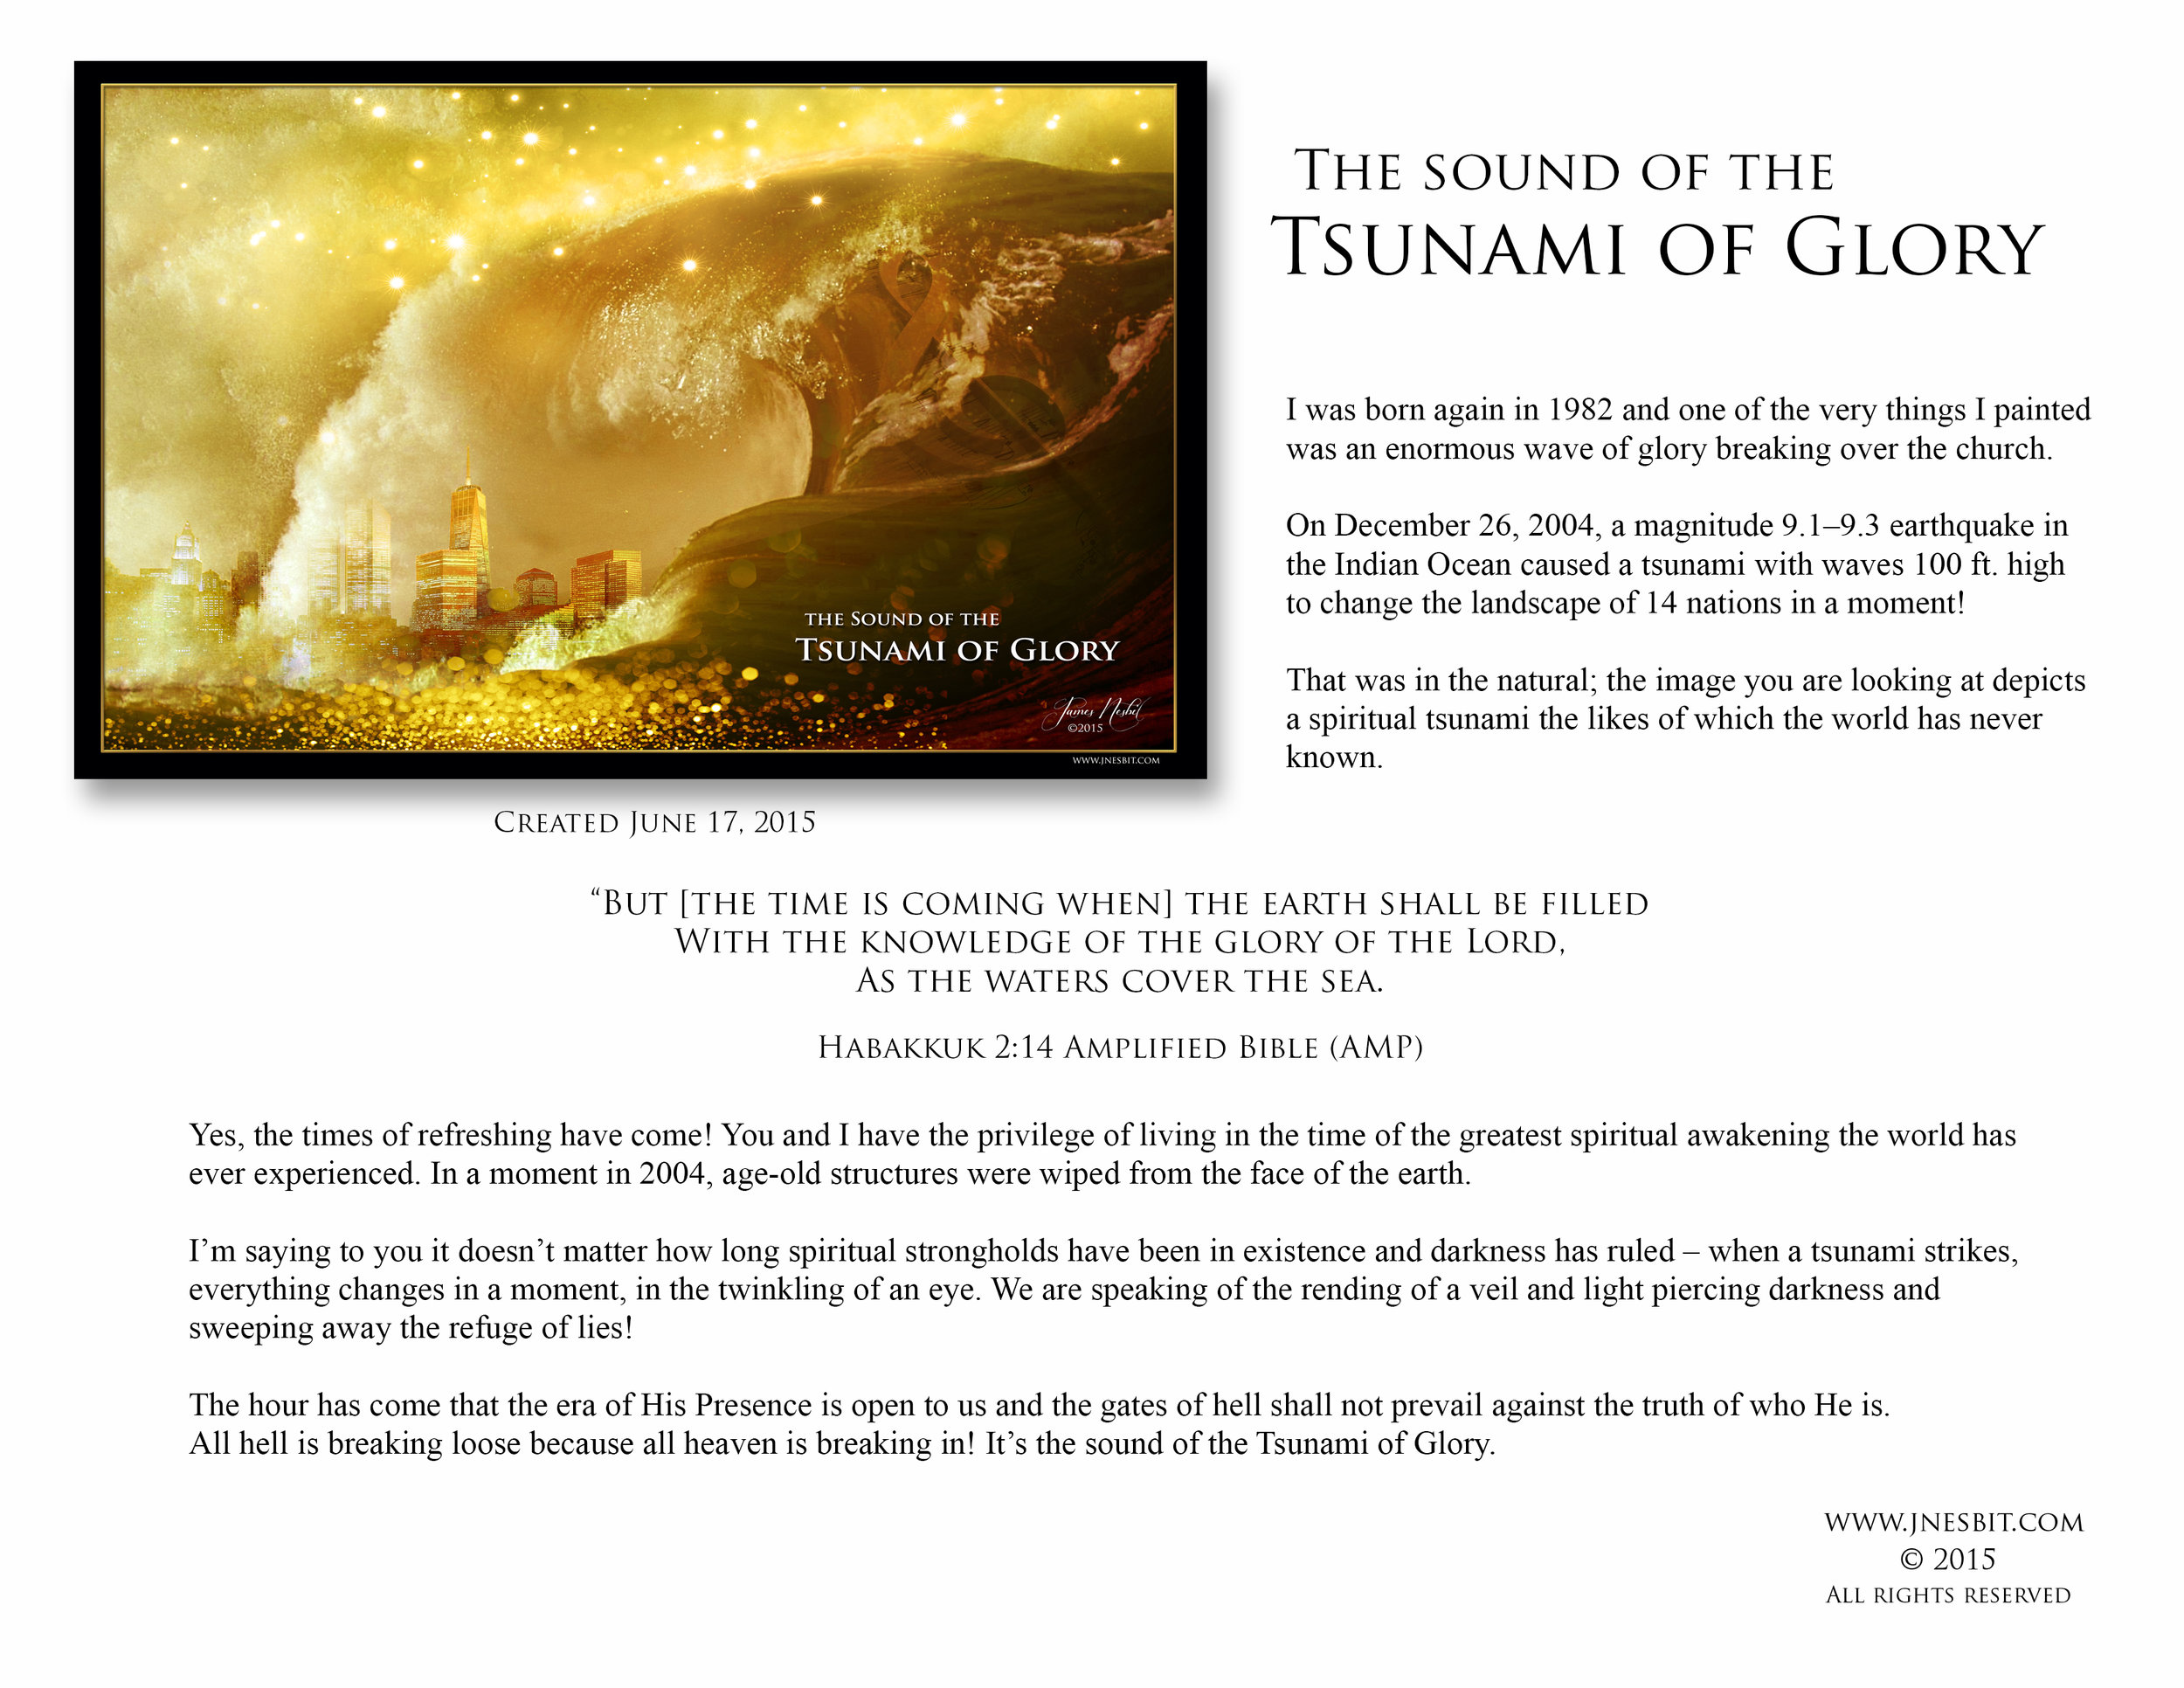 Tsunami of Glory Description copy.jpg